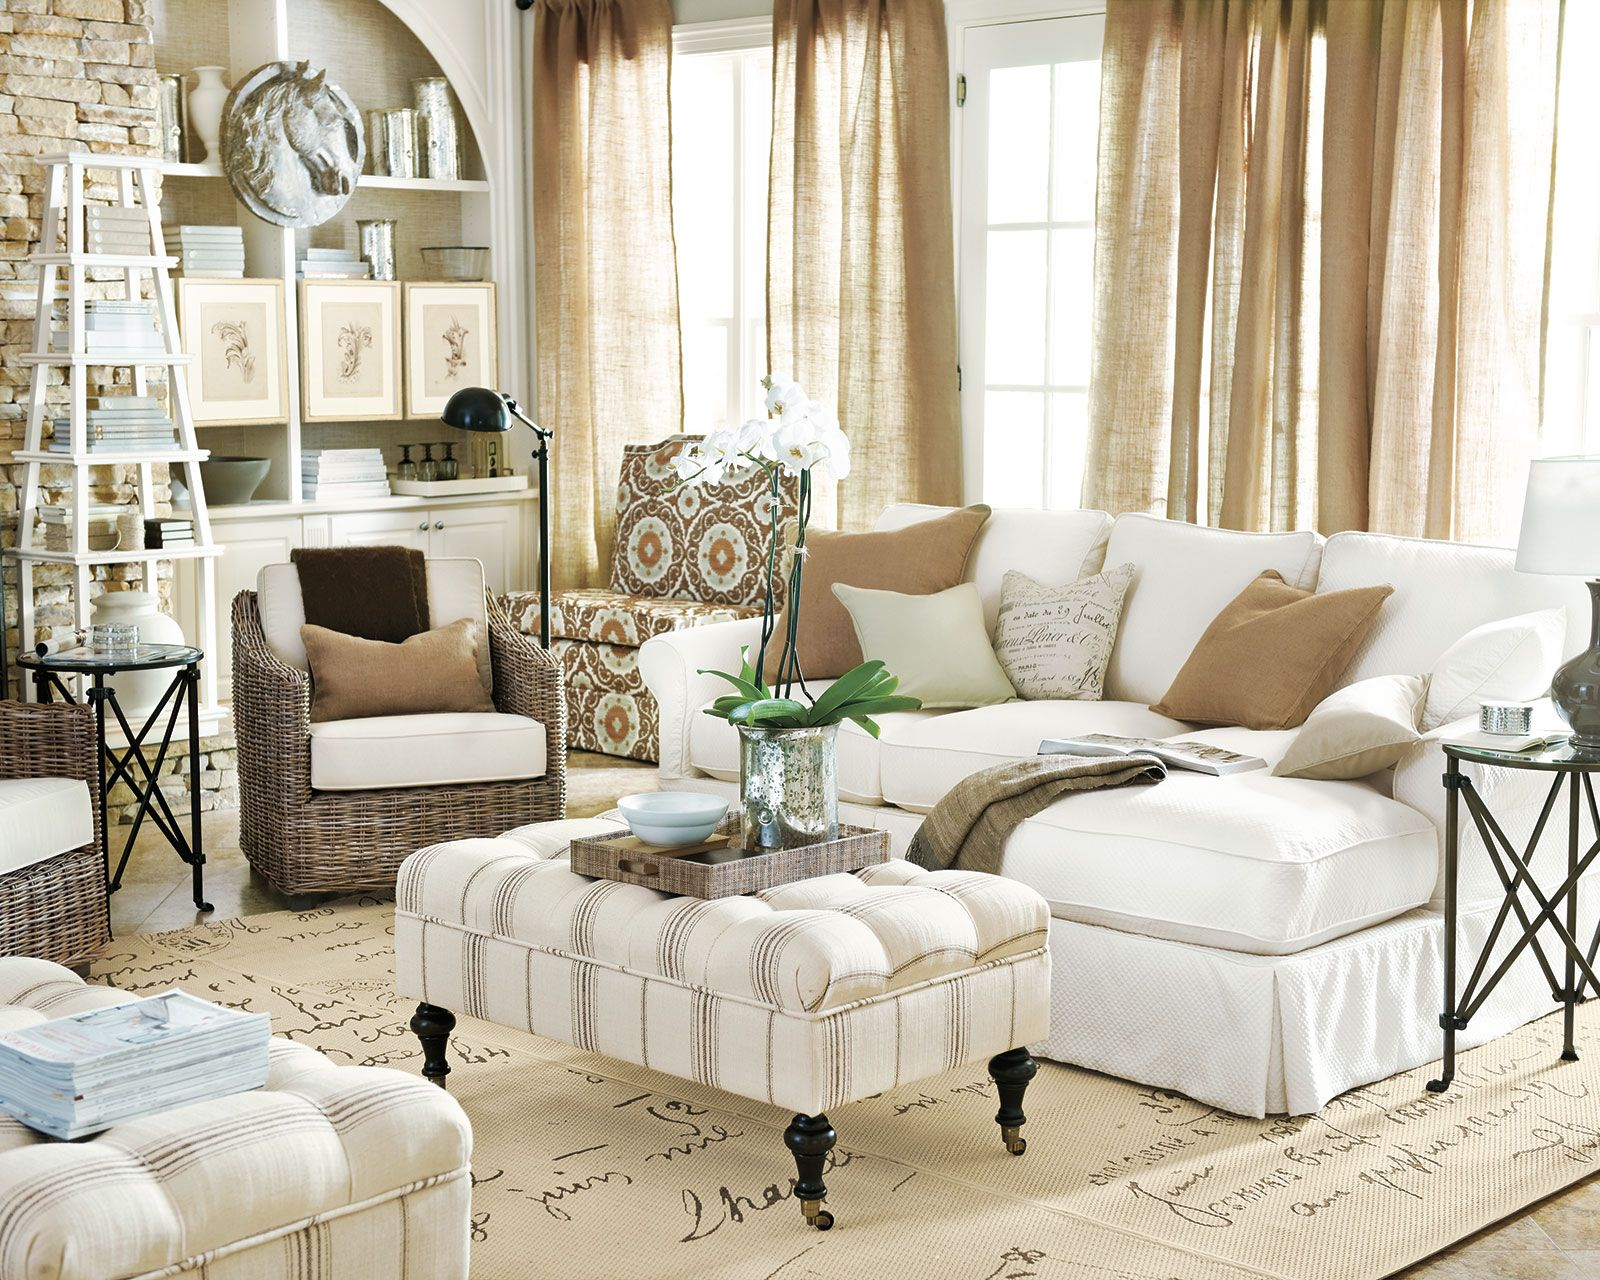 8 Ways to Add Extra Seating to Your Room | Ottomans, Living rooms ...